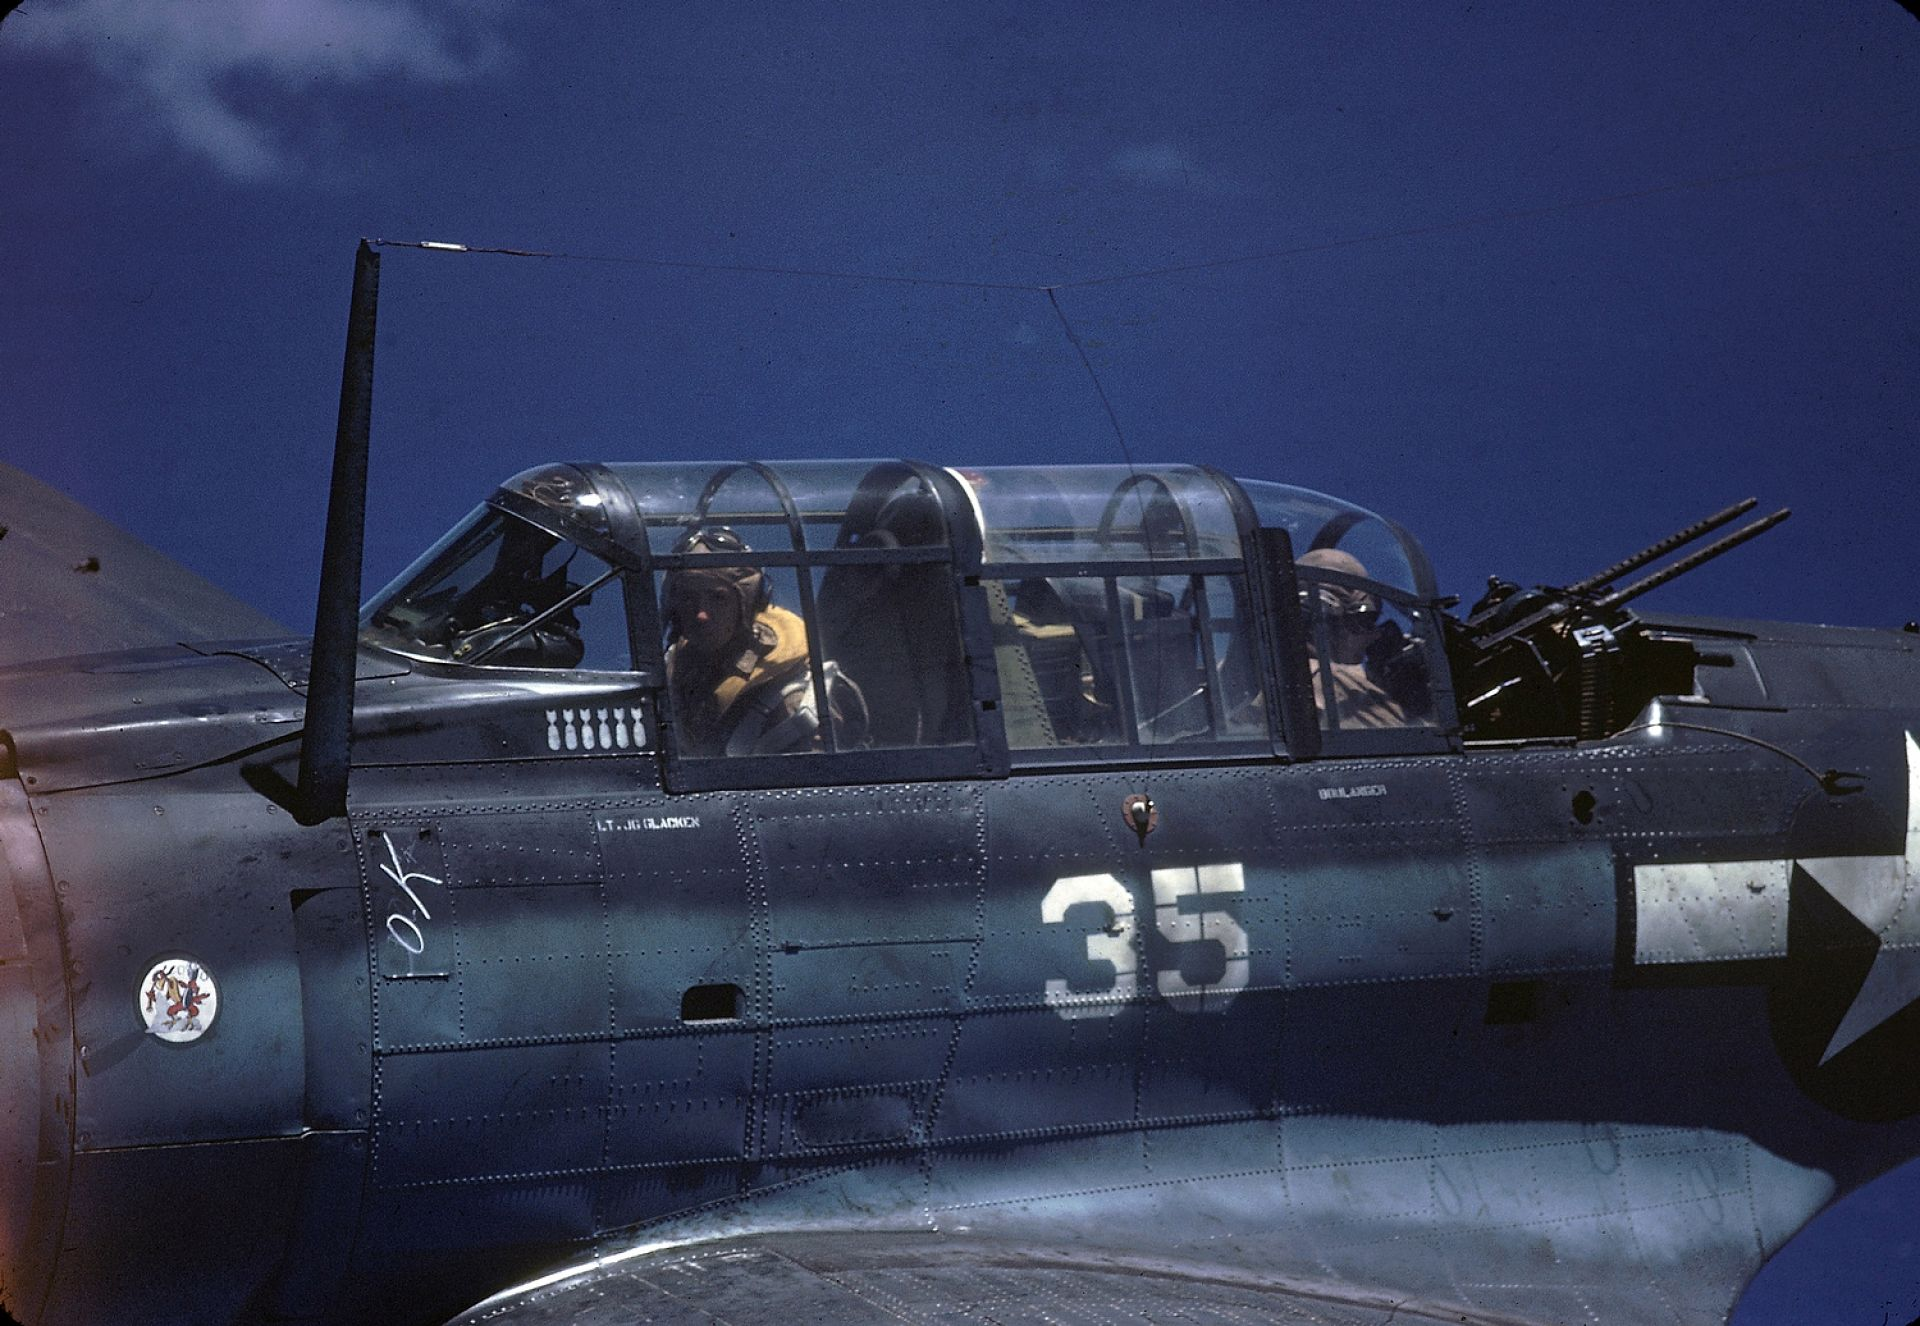 A Douglas SBD piloted by American Lt. George Glacken (left) with his gunner Leo Boulanger, near New Guinea, early April, 1944